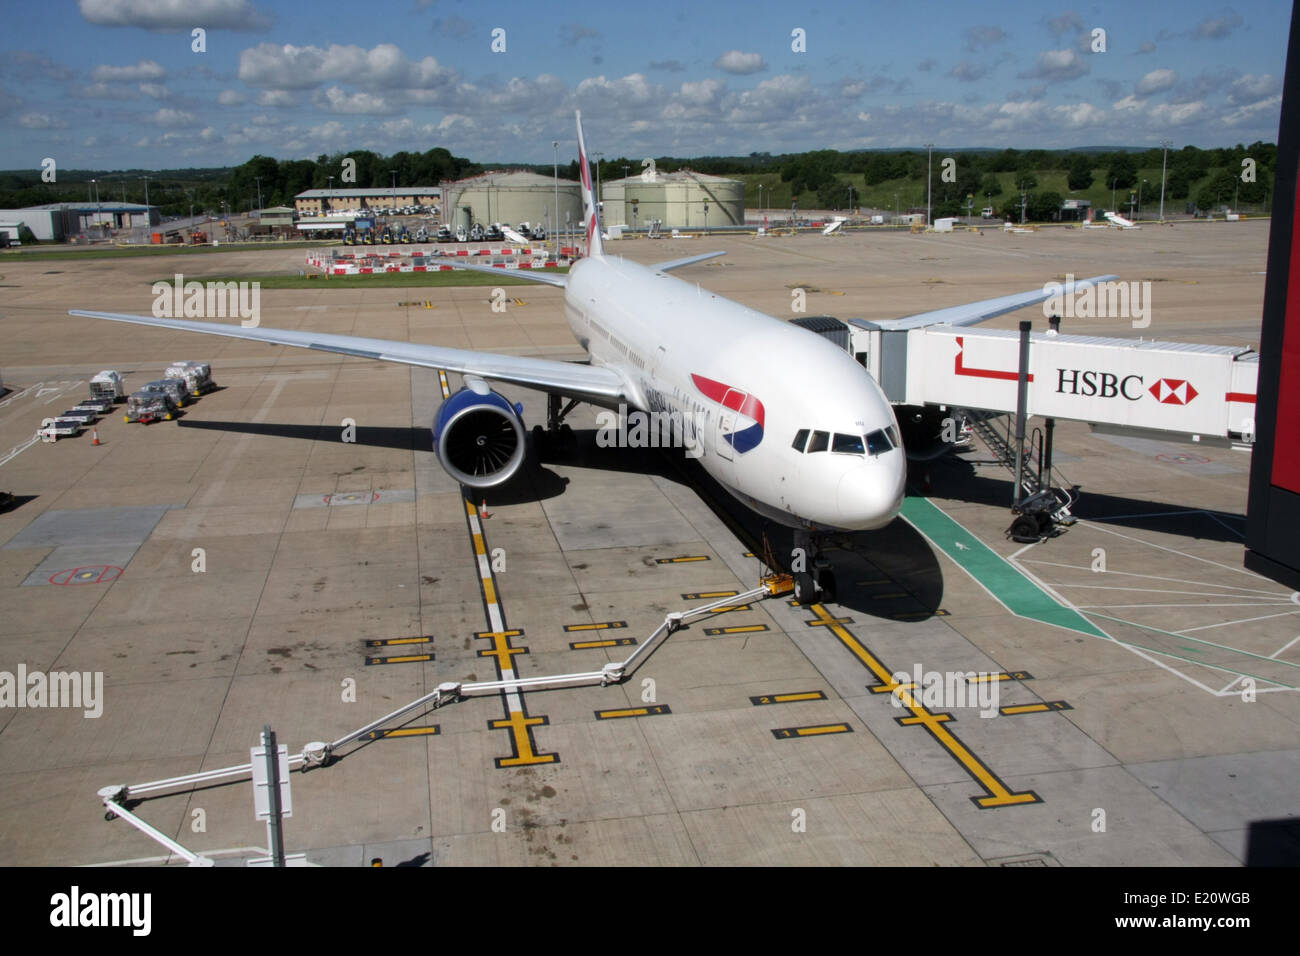 a British Airways Boeing 777 on its stand at London Gatwick Airport - Stock Image